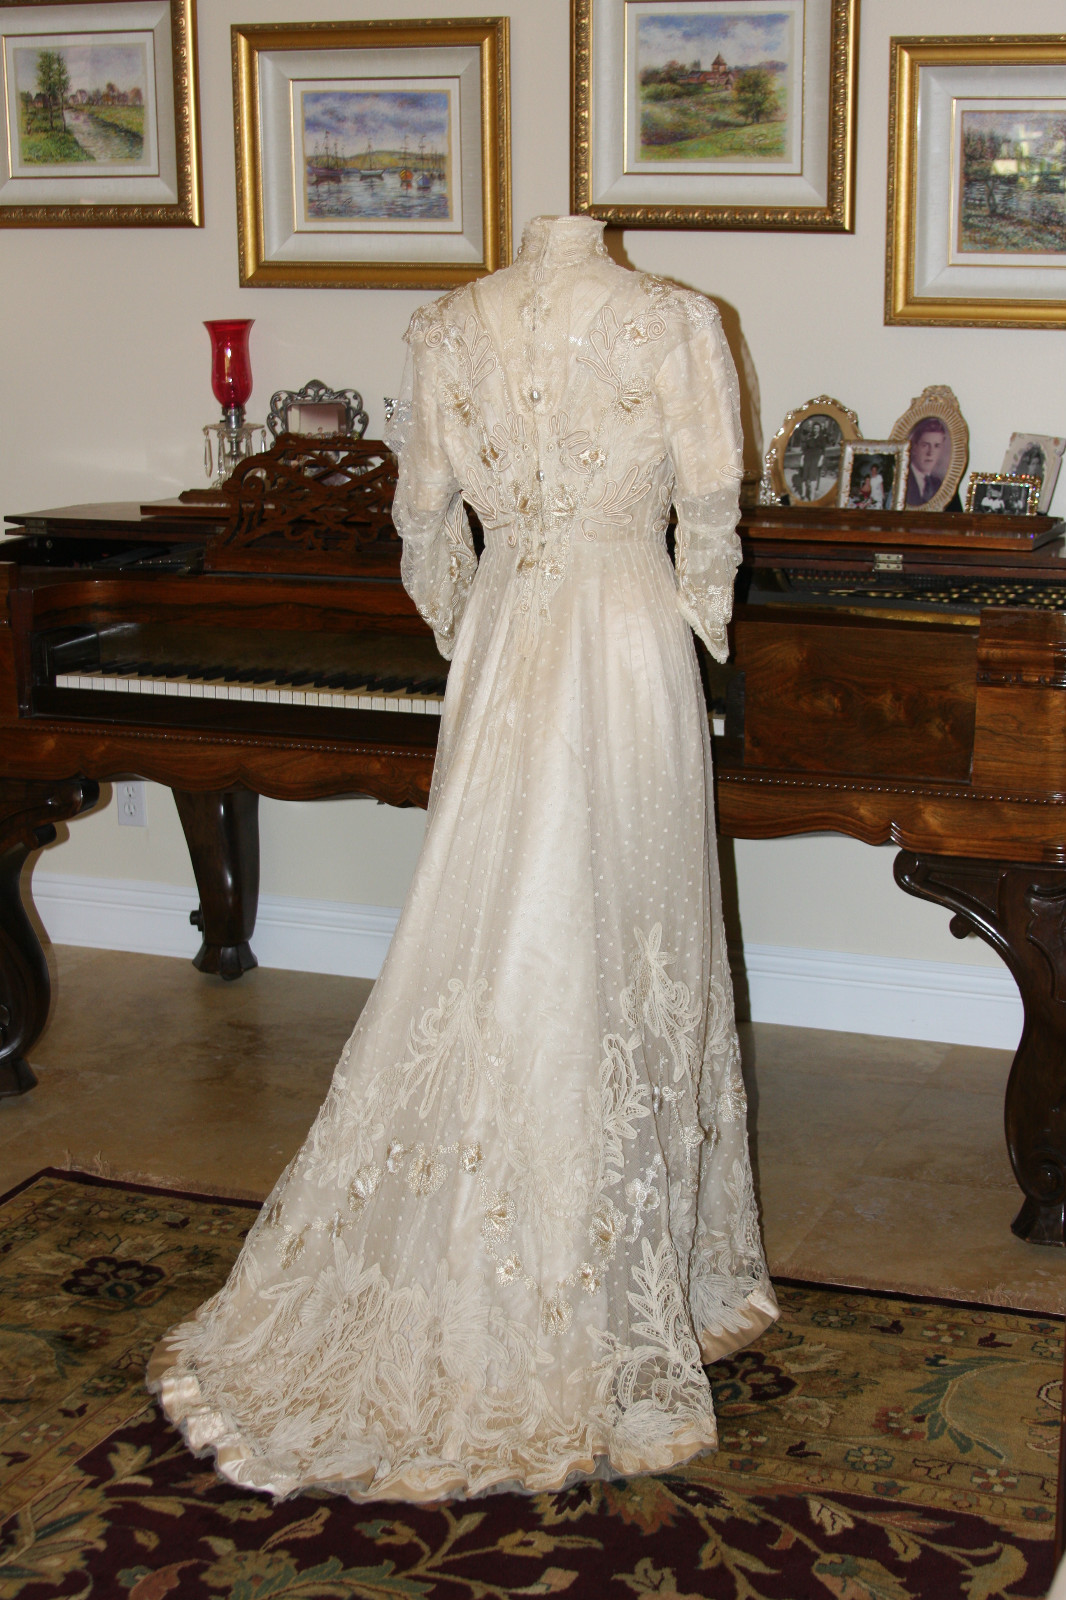 All The Pretty Dresses: Stunning Edwardian Wedding Gown